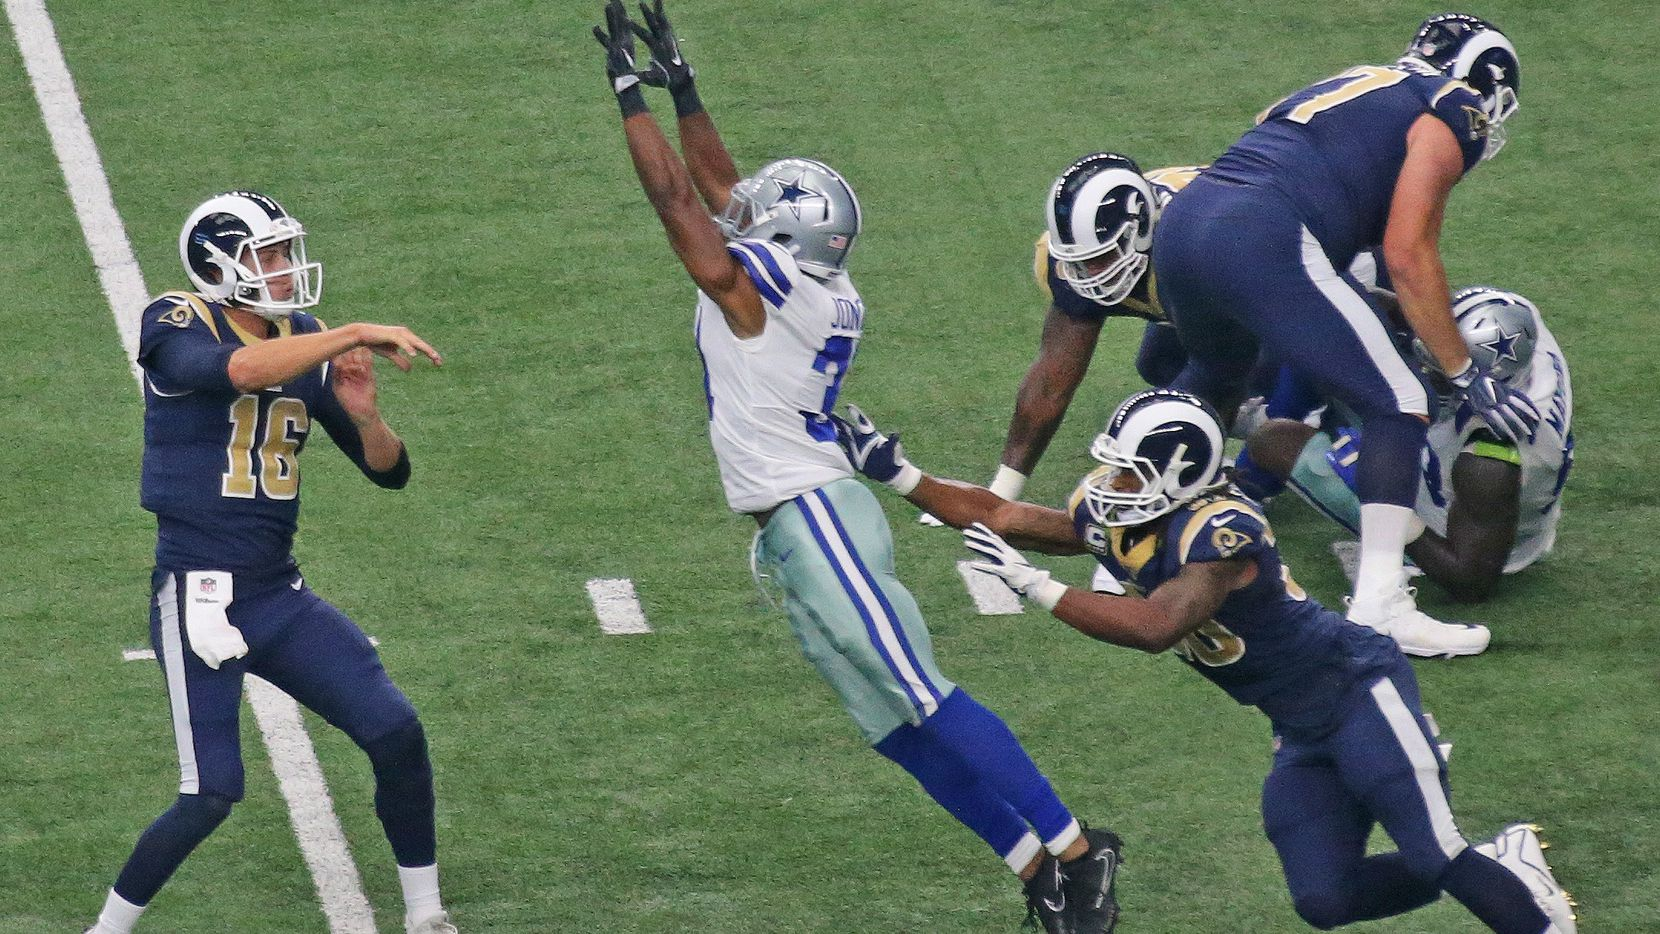 Dallas Cowboys free safety Byron Jones (31) pressures Los Angeles Rams quarterback Jared Goff (16) in the first half during the Los Angeles Rams vs. the Dallas Cowboys NFL football game at AT&T Stadium in Arlington on Sunday, October 1, 2017.